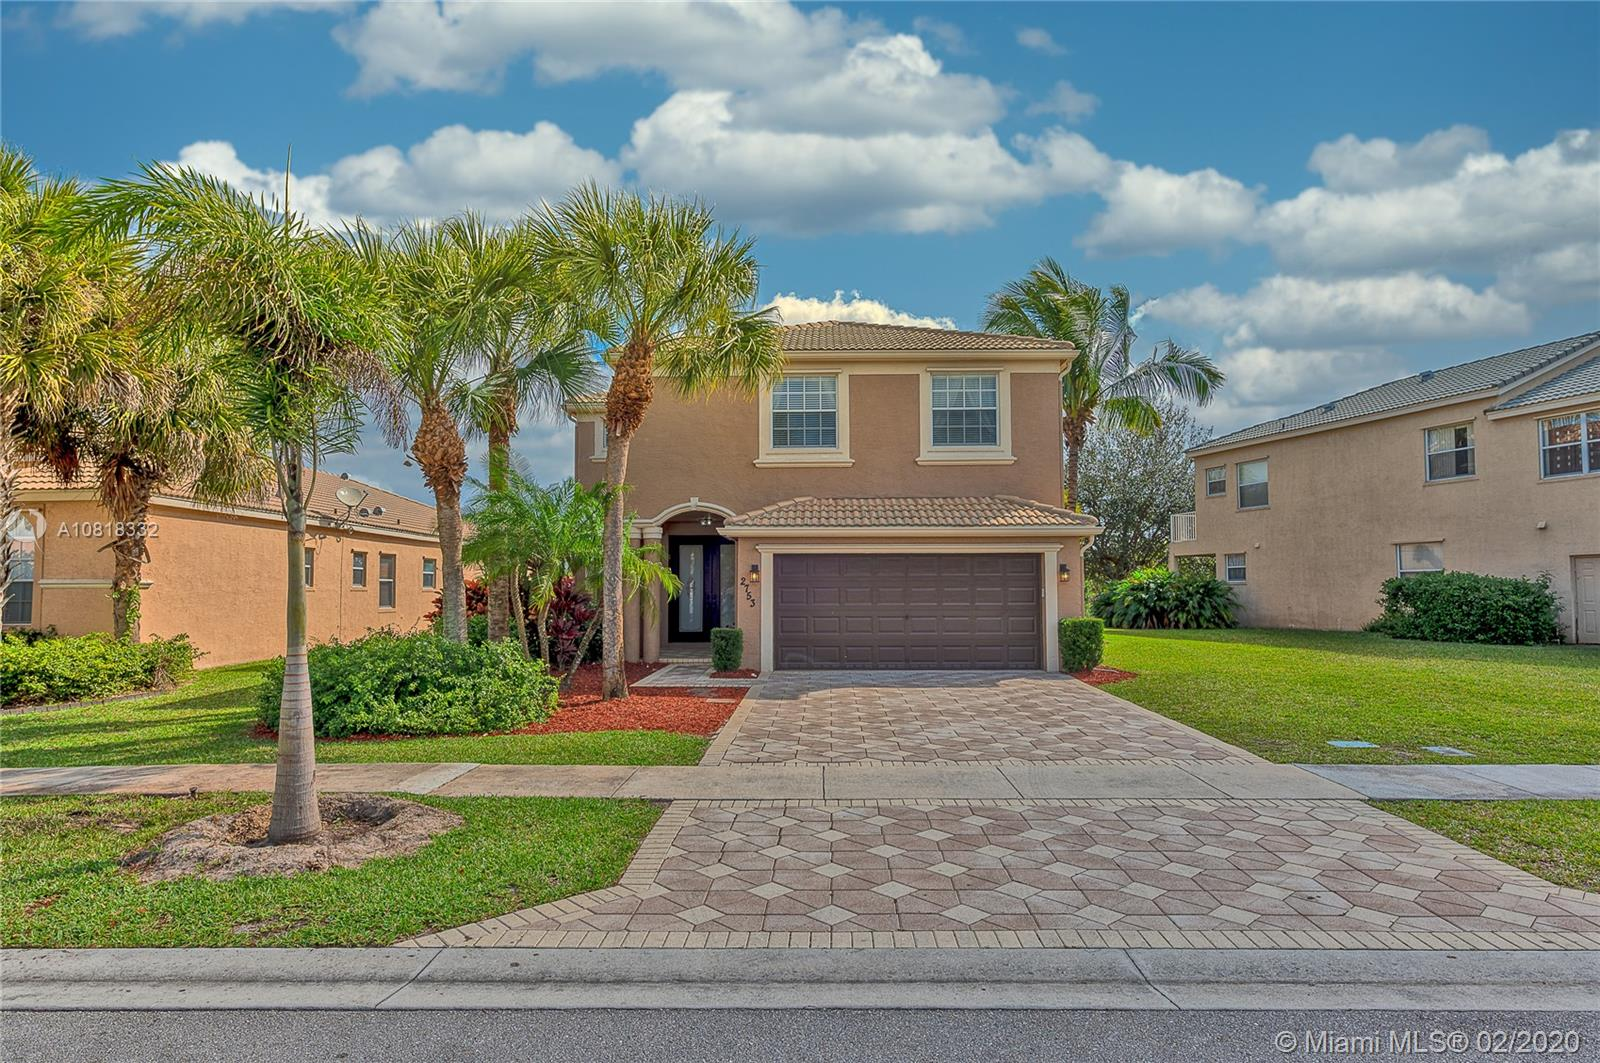 2753 Misty Oaks Cir, Royal Palm Beach, FL 33411